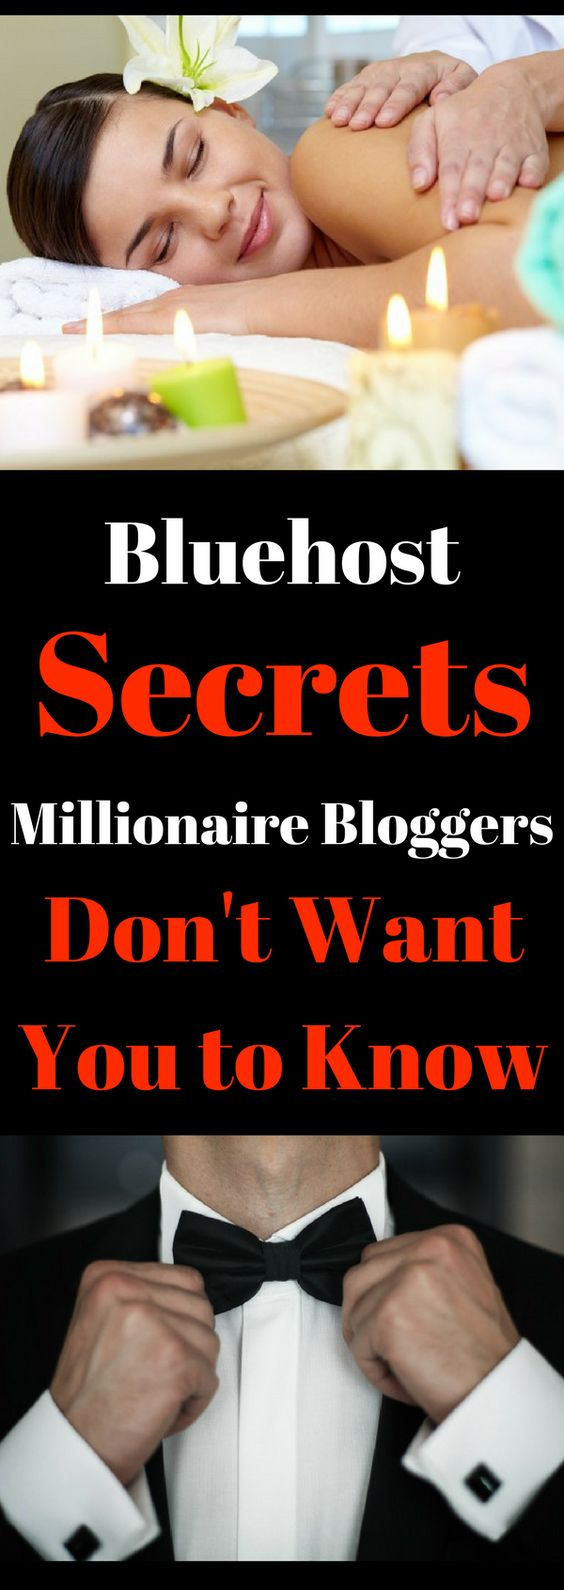 Bluehost Affiliate Program - How Millionaire Bloggers Signup and Make a Killing